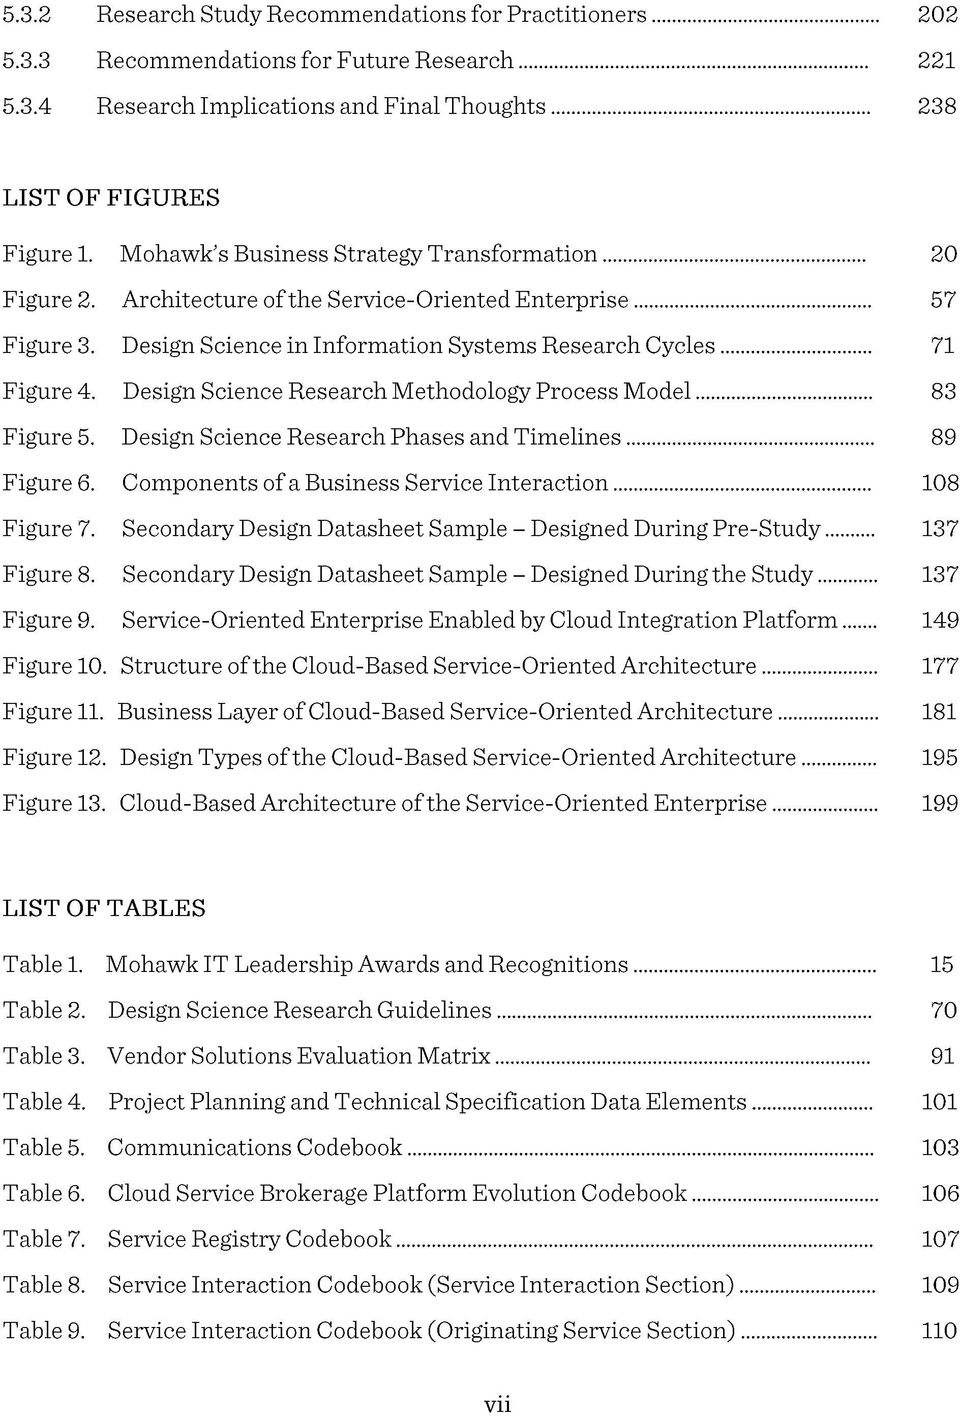 Design Science Research Methodology Process M odel... 83 Figure 5. Design Science Research Phases and Timelines... 89 Figure 6. Components of a Business Service Interaction... 108 Figure 7.